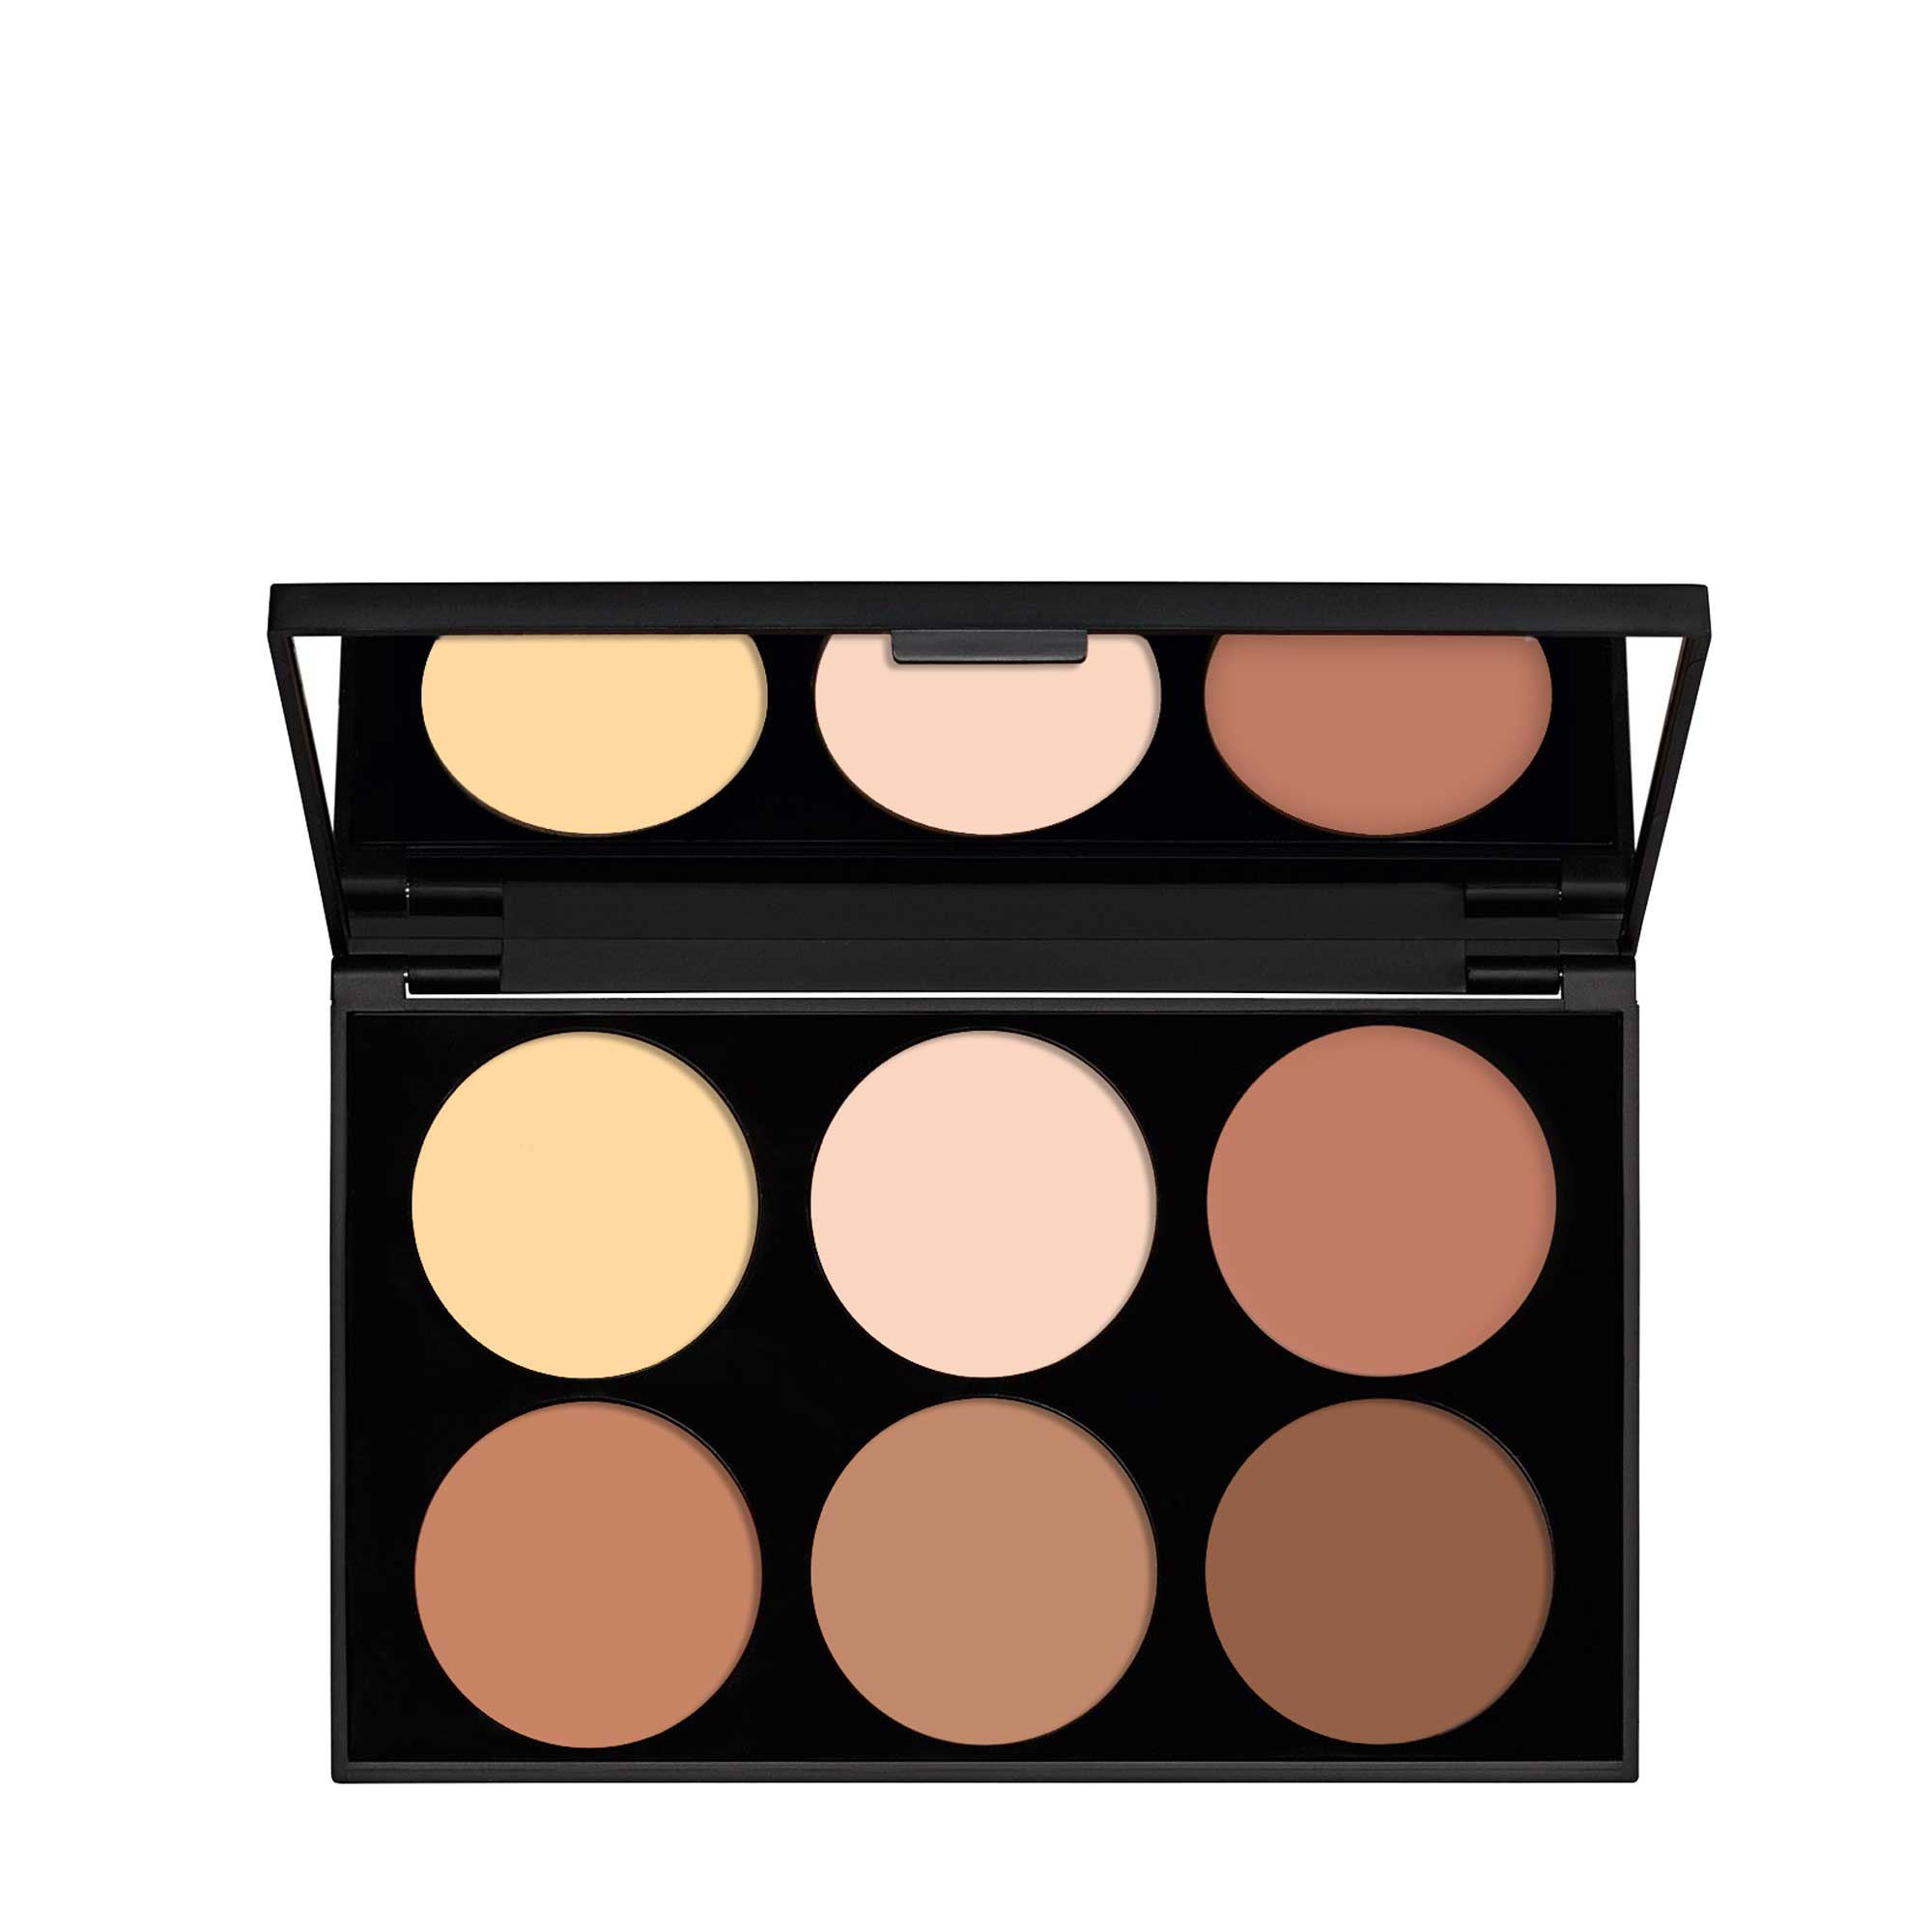 Pro Palette Con Duo Brush For Face & Eyes - Diego dalla Palma